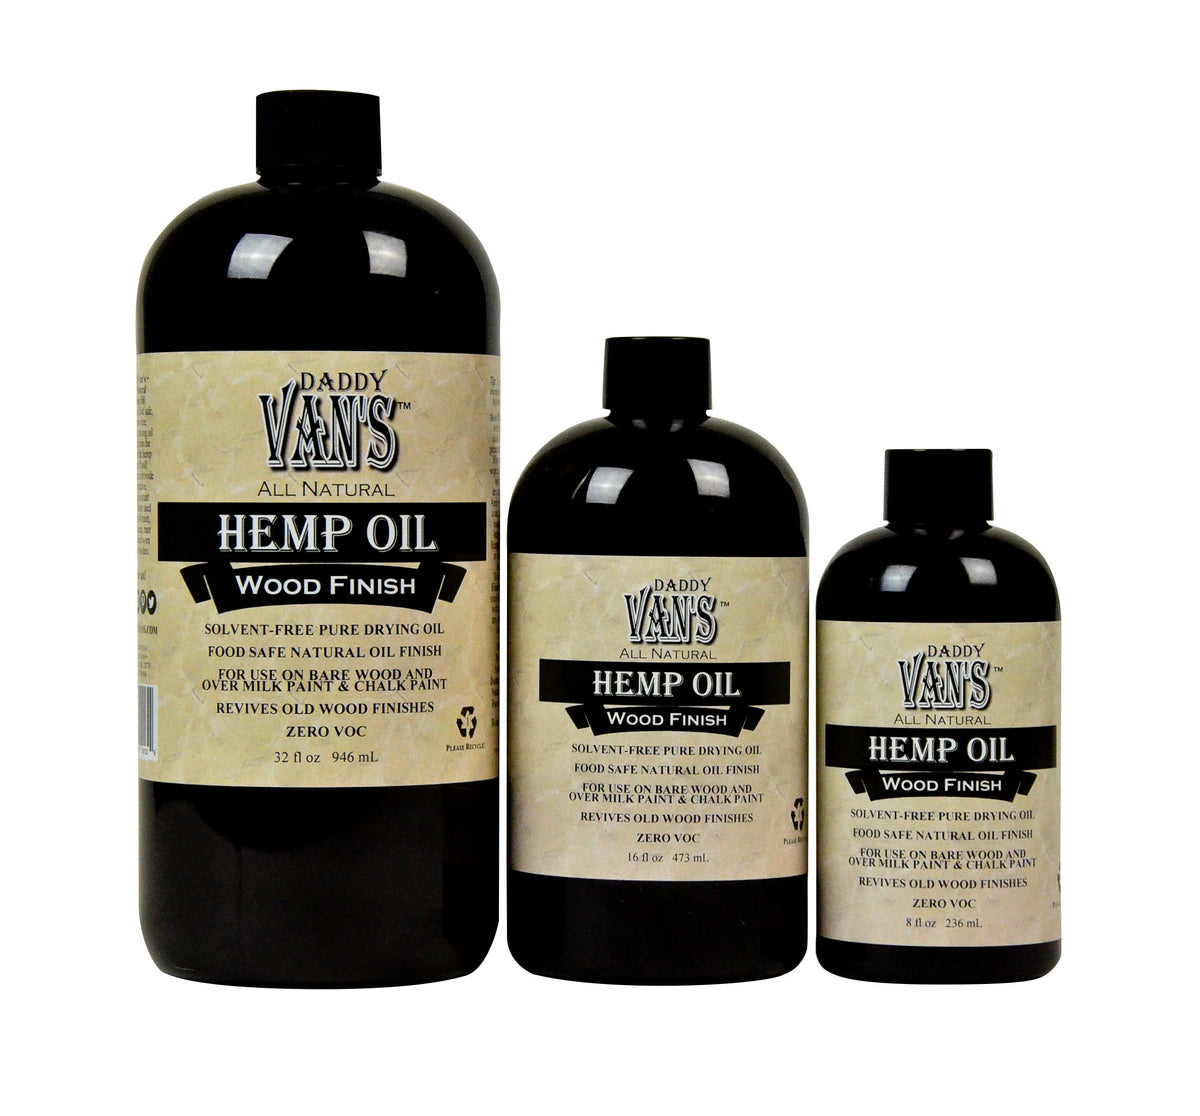 Daddy Van's All Natural   Hemp Oil